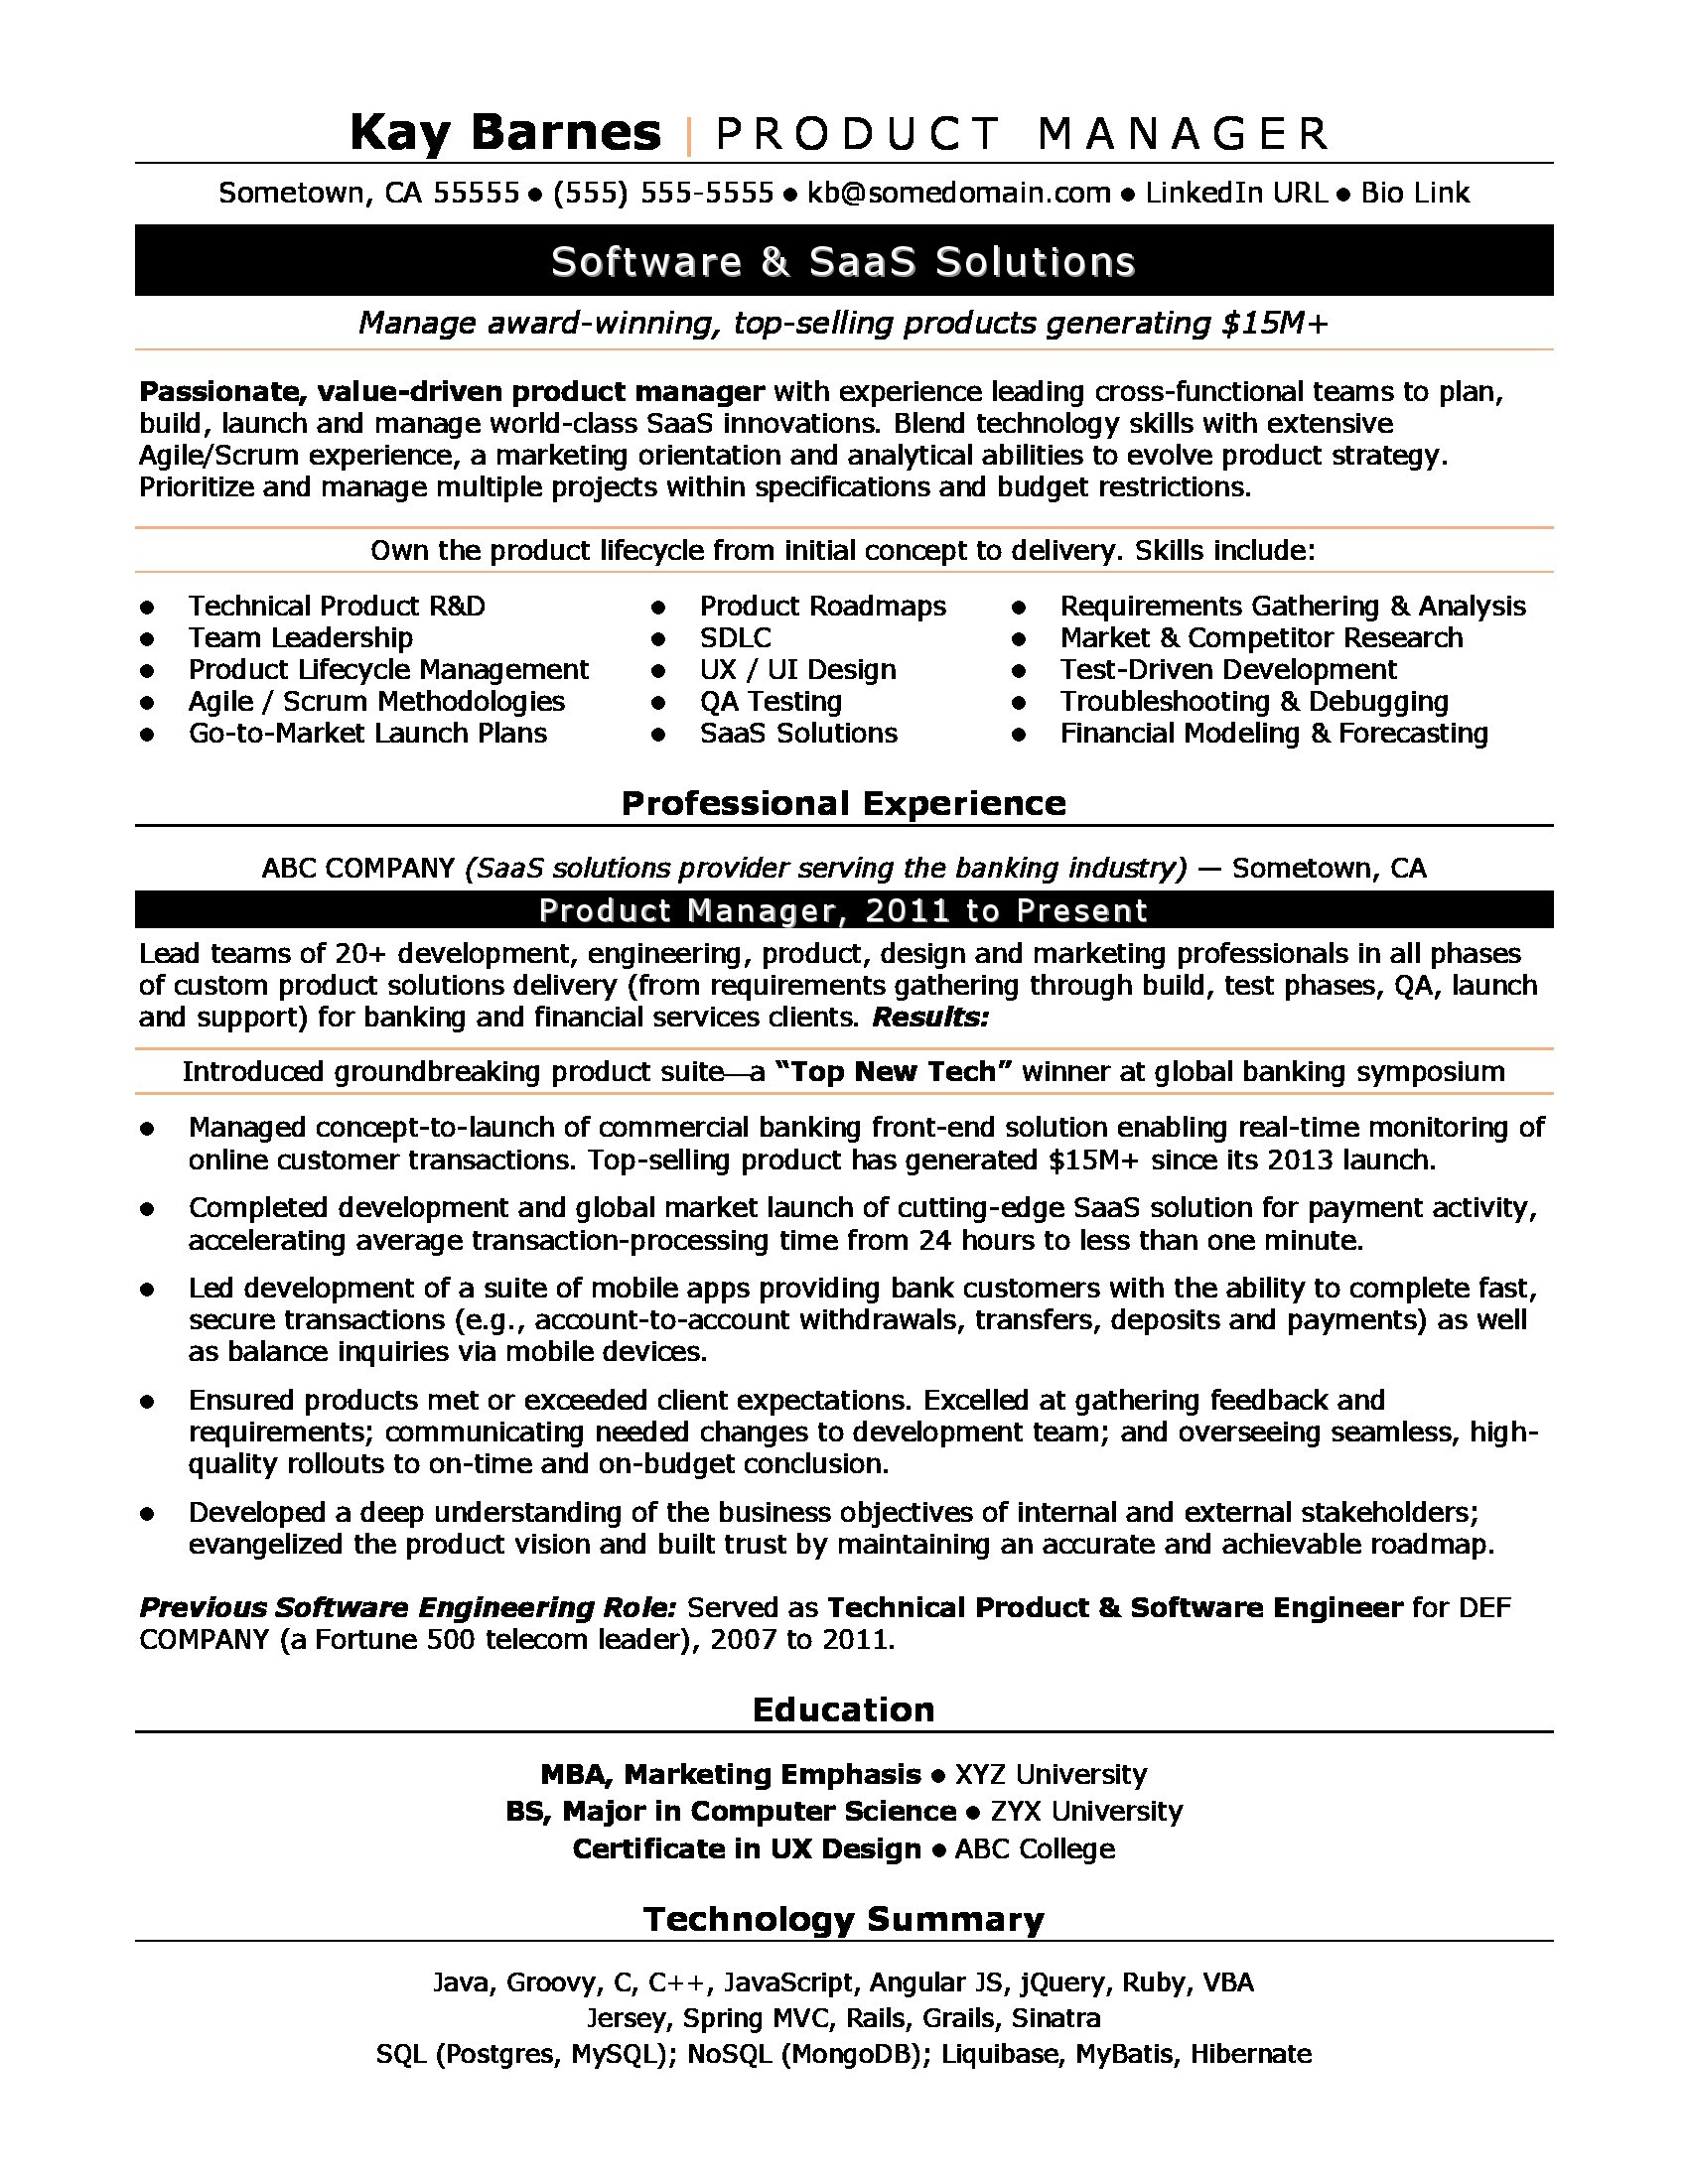 Product Manager Resume Sample  Resume Project Manager